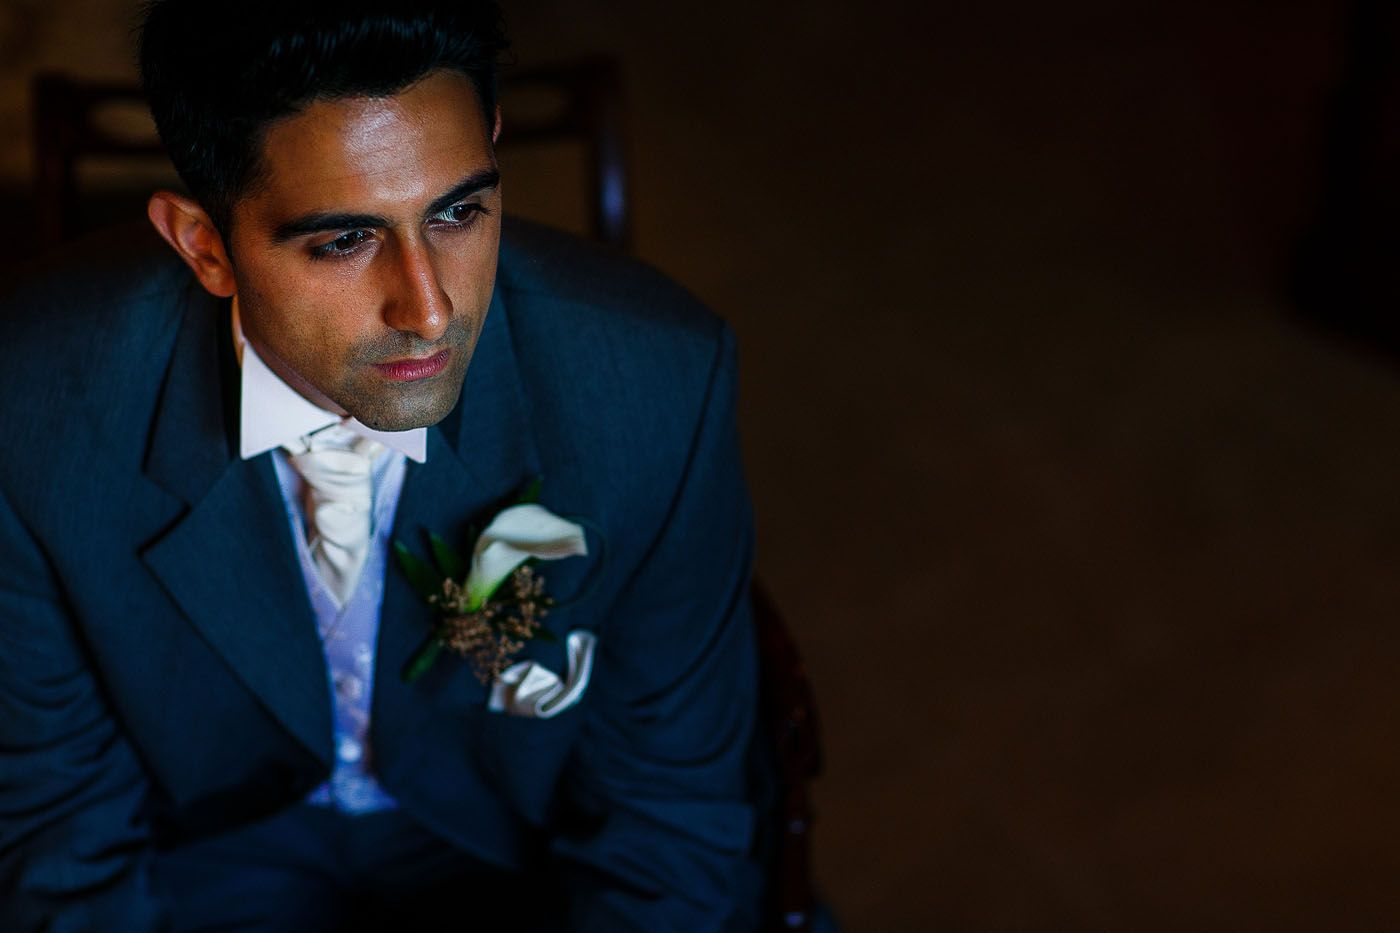 Indian groom portraits from south asian weddings view fblog